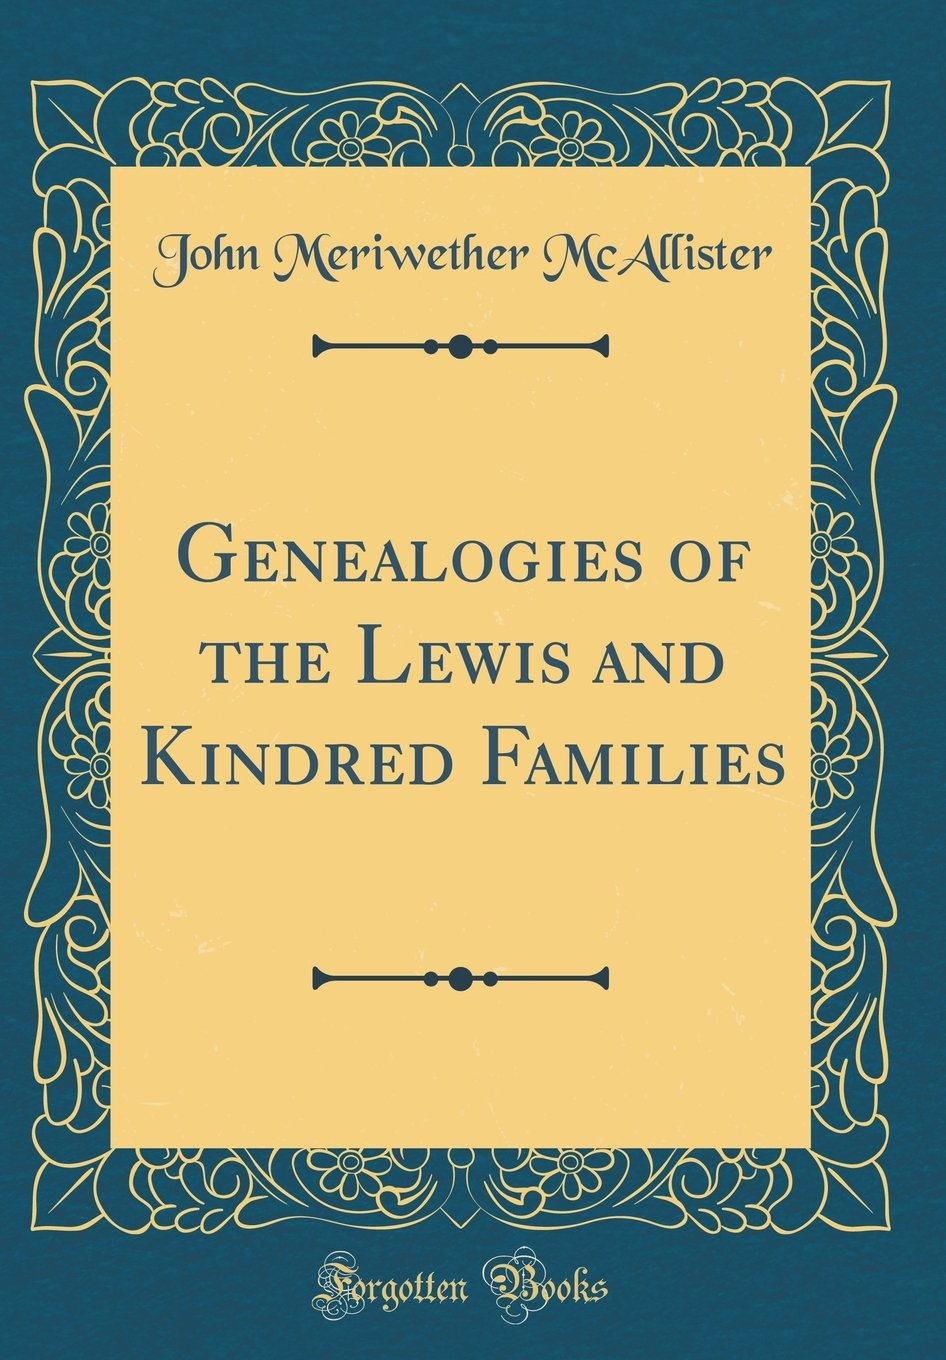 Genealogies of the Lewis and Kindred Families (Classic Reprint): John  Meriwether McAllister: 9780266970538: Amazon.com: Books